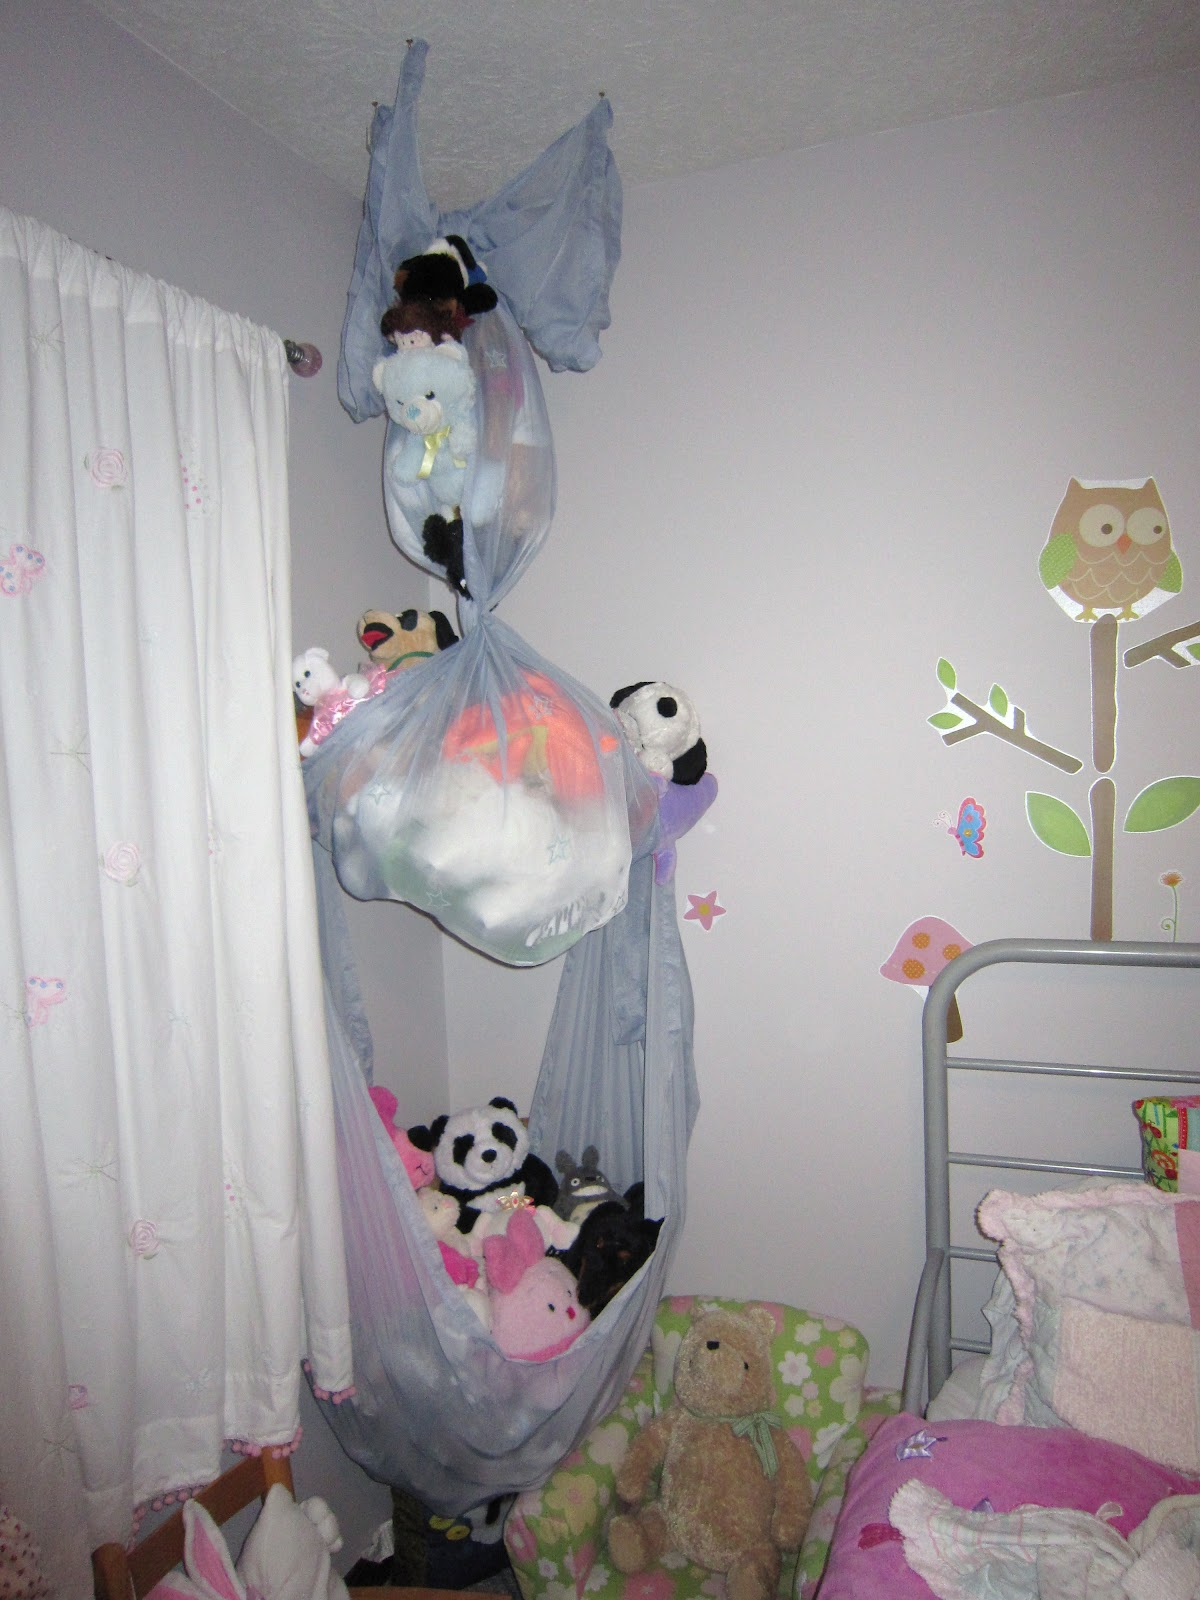 Mcgalver How To Make Your Own Stuffed Animal Hammock